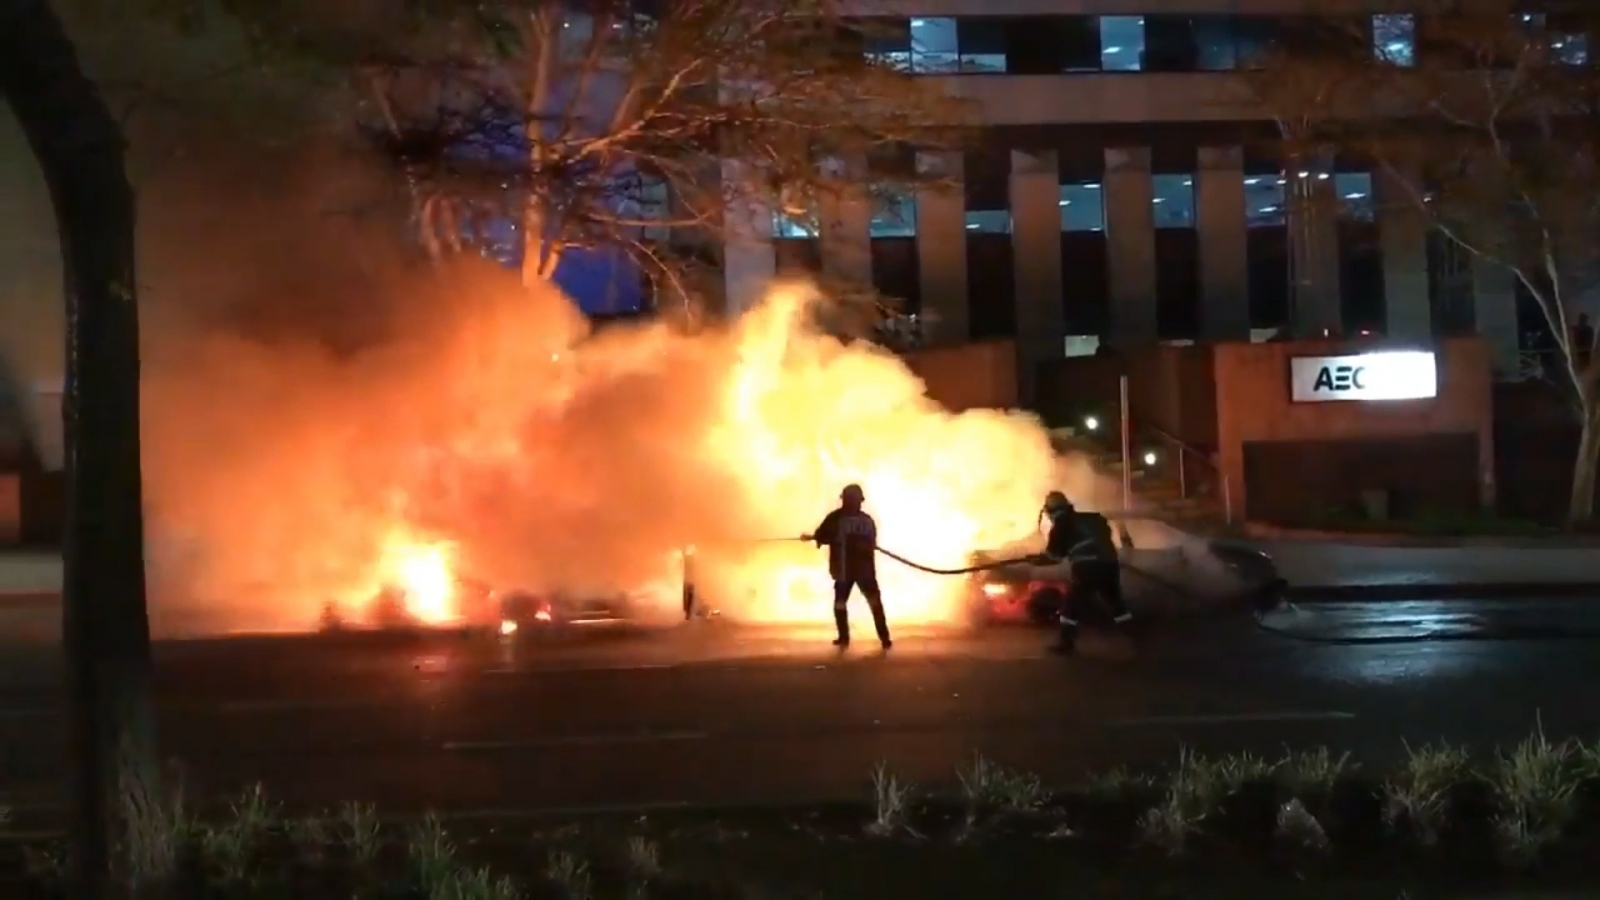 An Uber taxi on fire